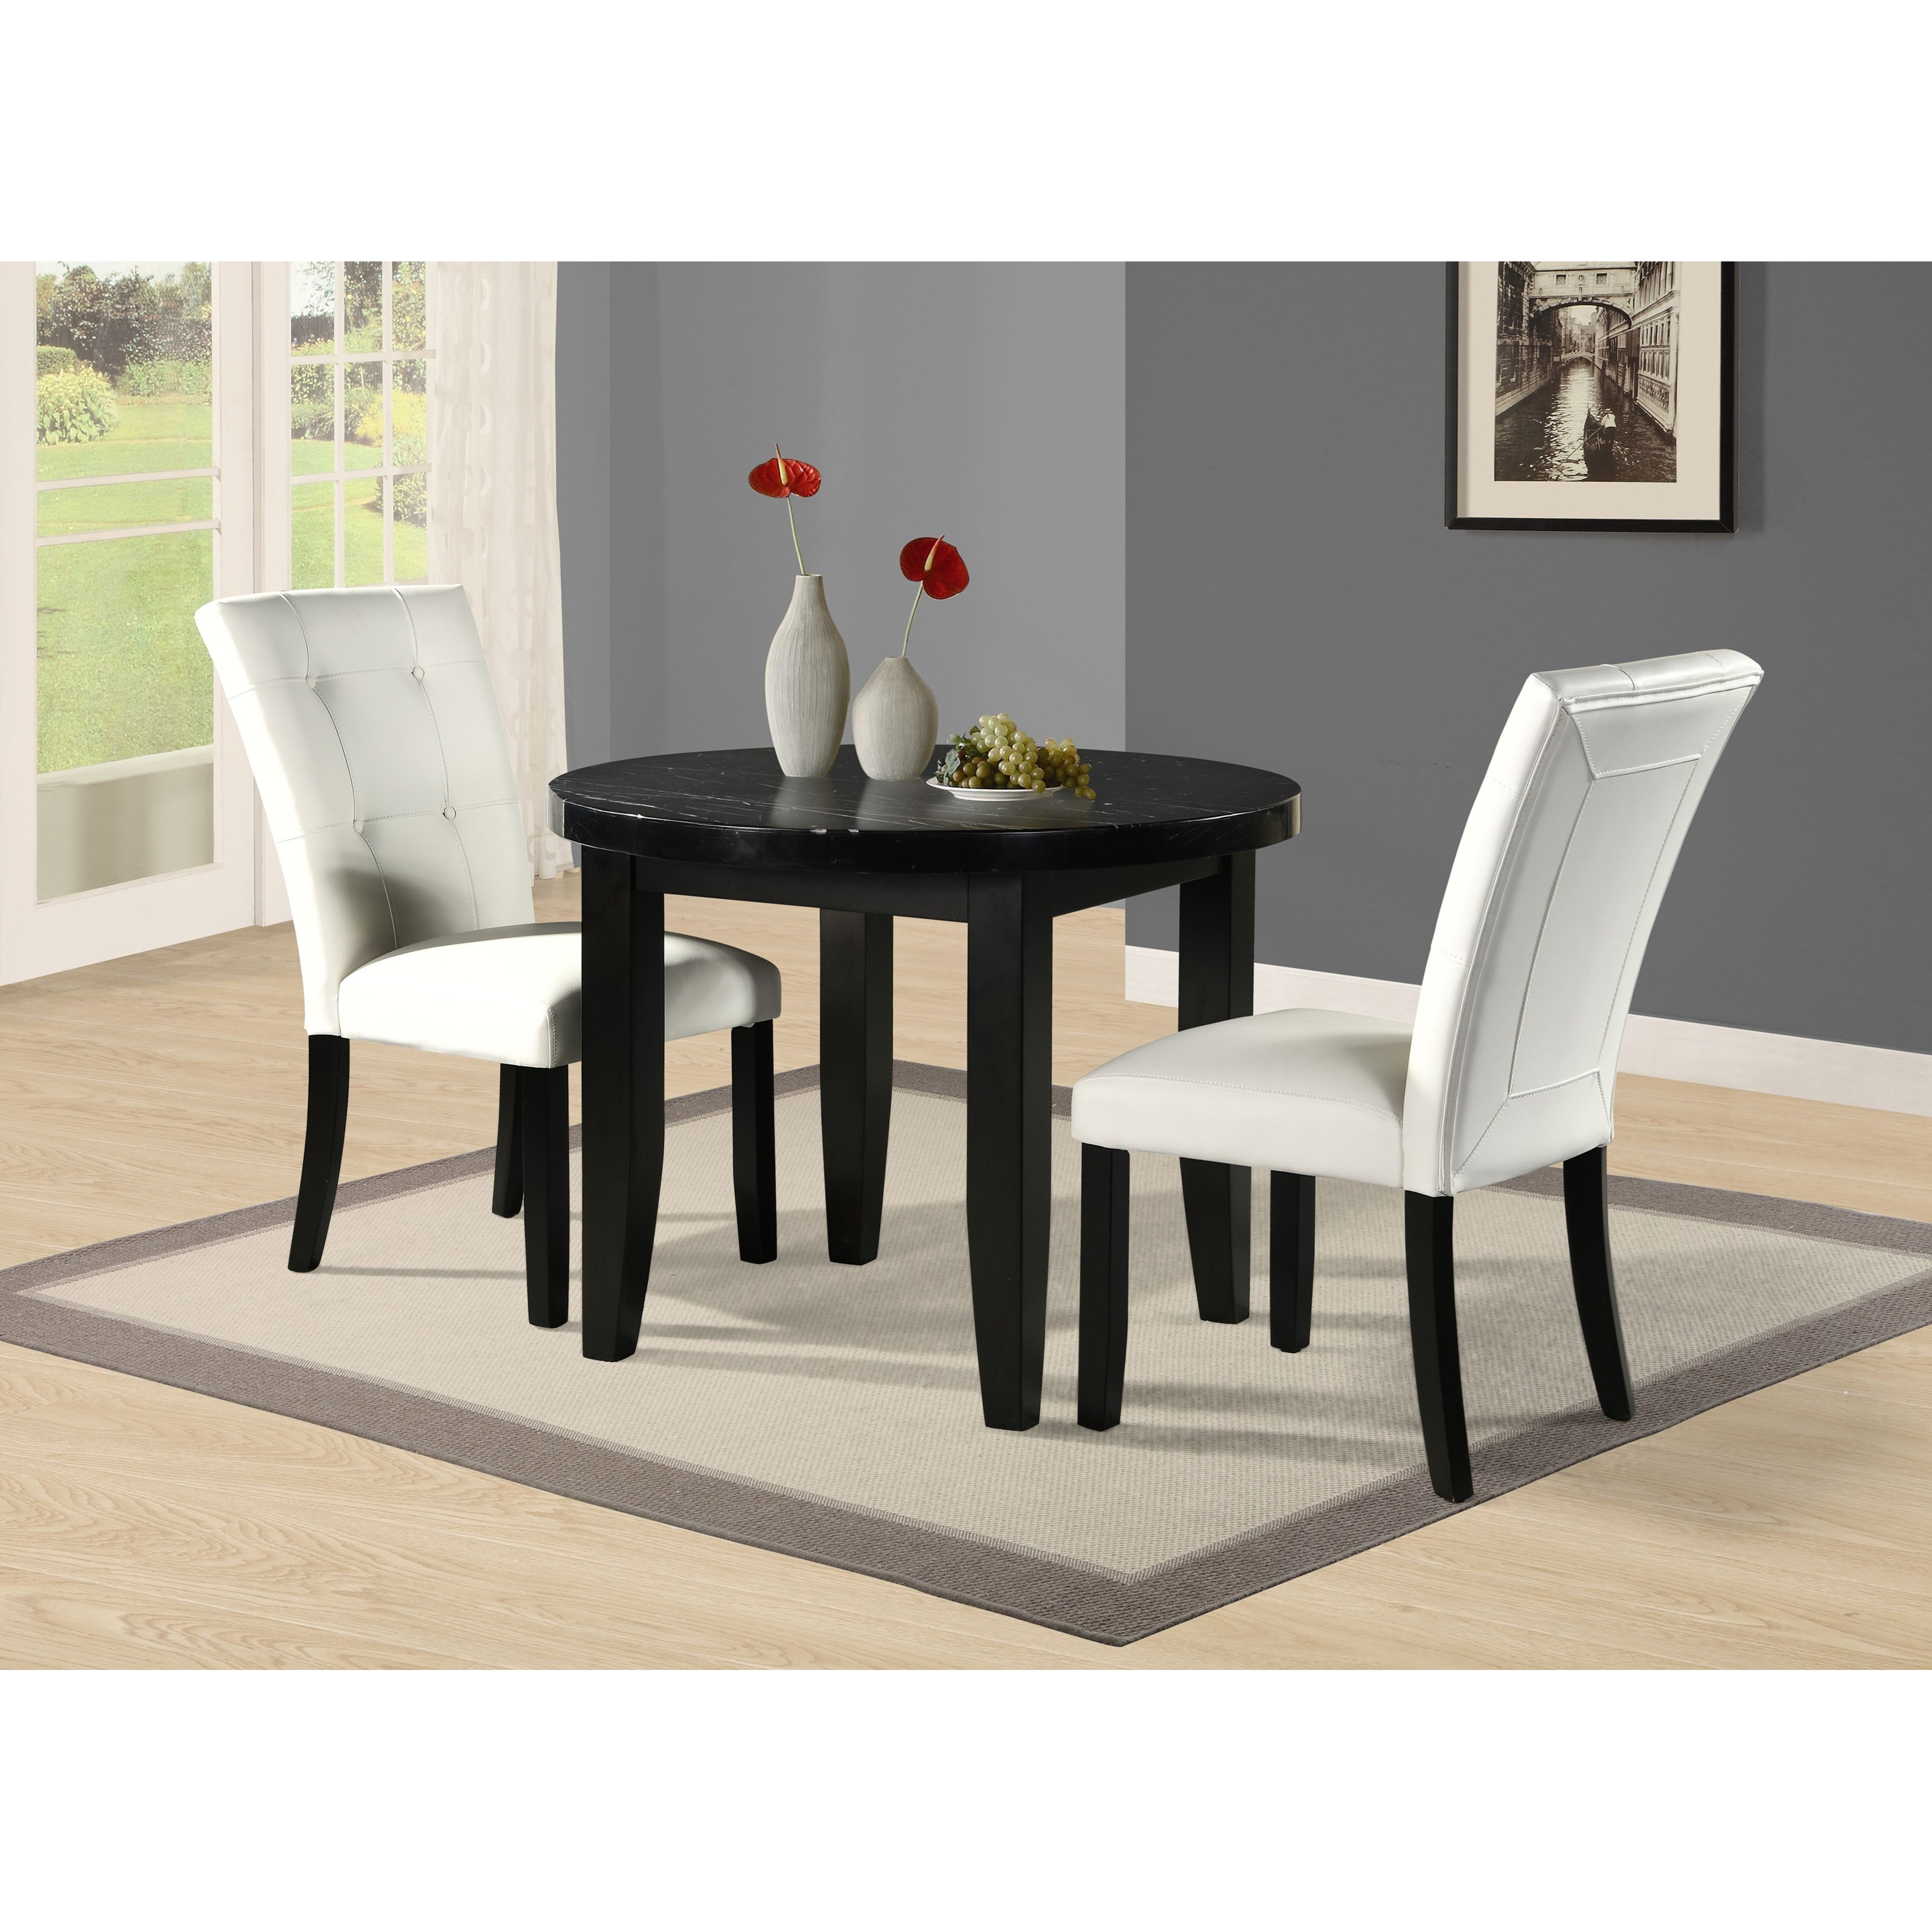 Markina 3-Piece Counter Table and Chair Set by Steve Silver at Northeast Factory Direct